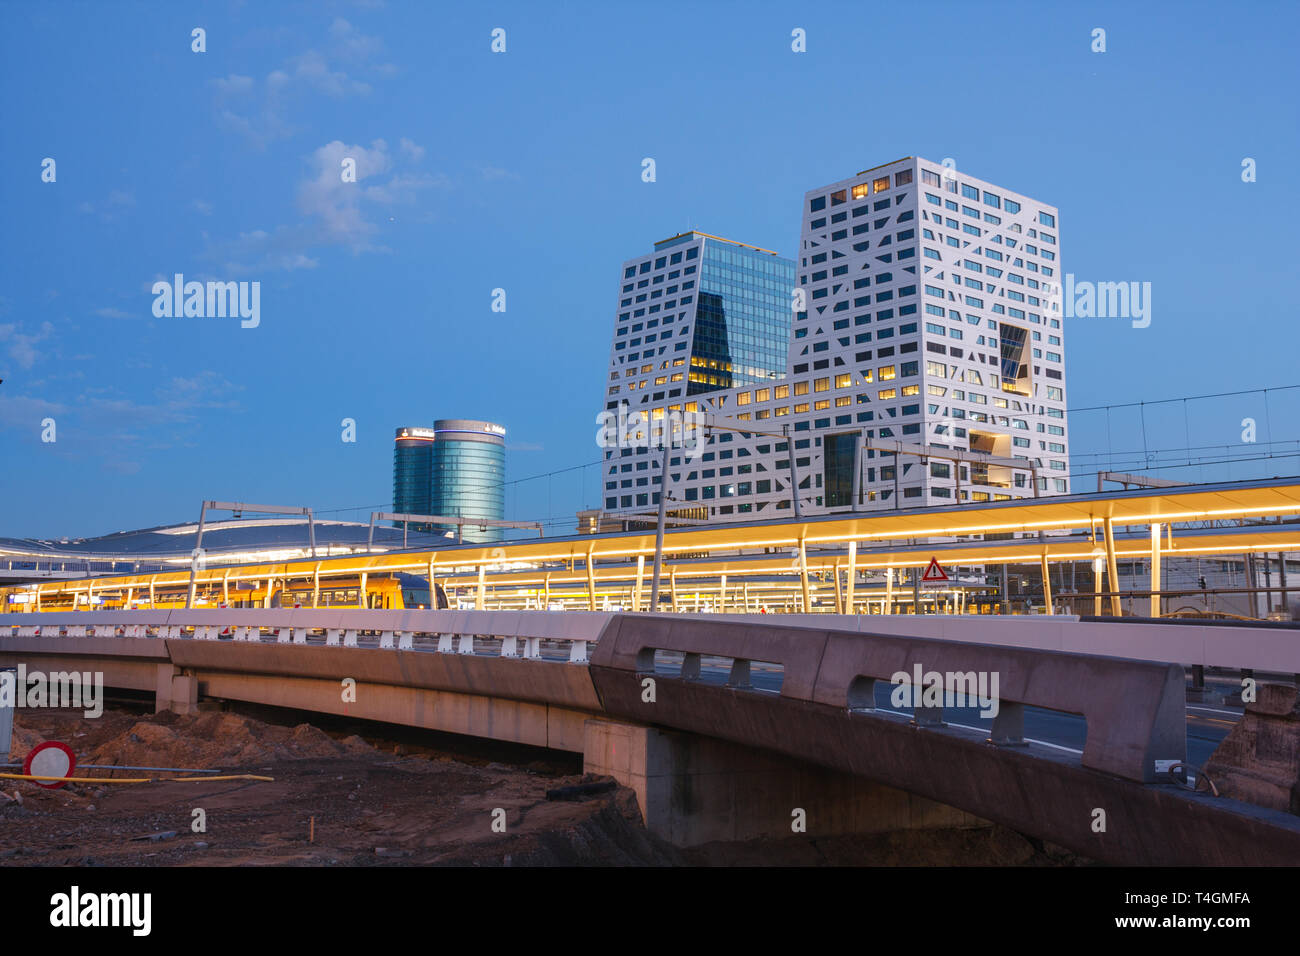 Platforms of Utrecht Centraal Station, the city hall (Stadskantoor) and the Rabobank headquarters (Verrekijker) during sunset. Utrcht, The Netherlands. - Stock Image